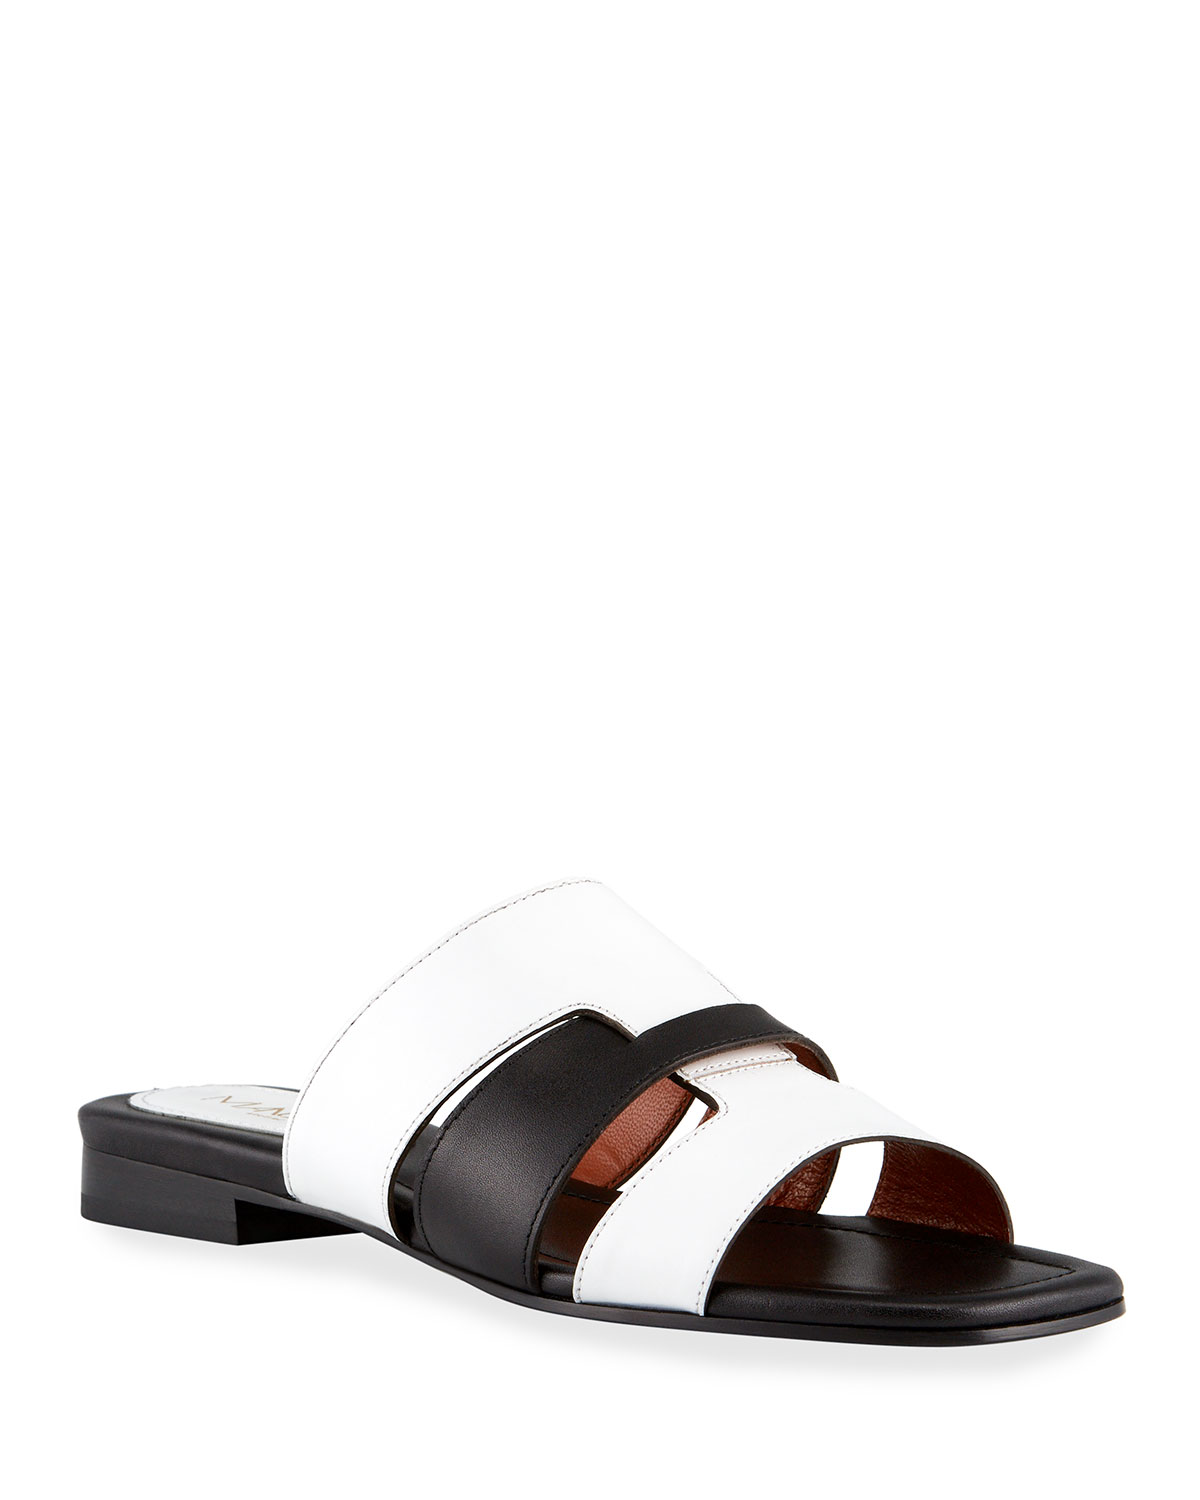 15mm Bicolor Woven Leather Flat Sandals